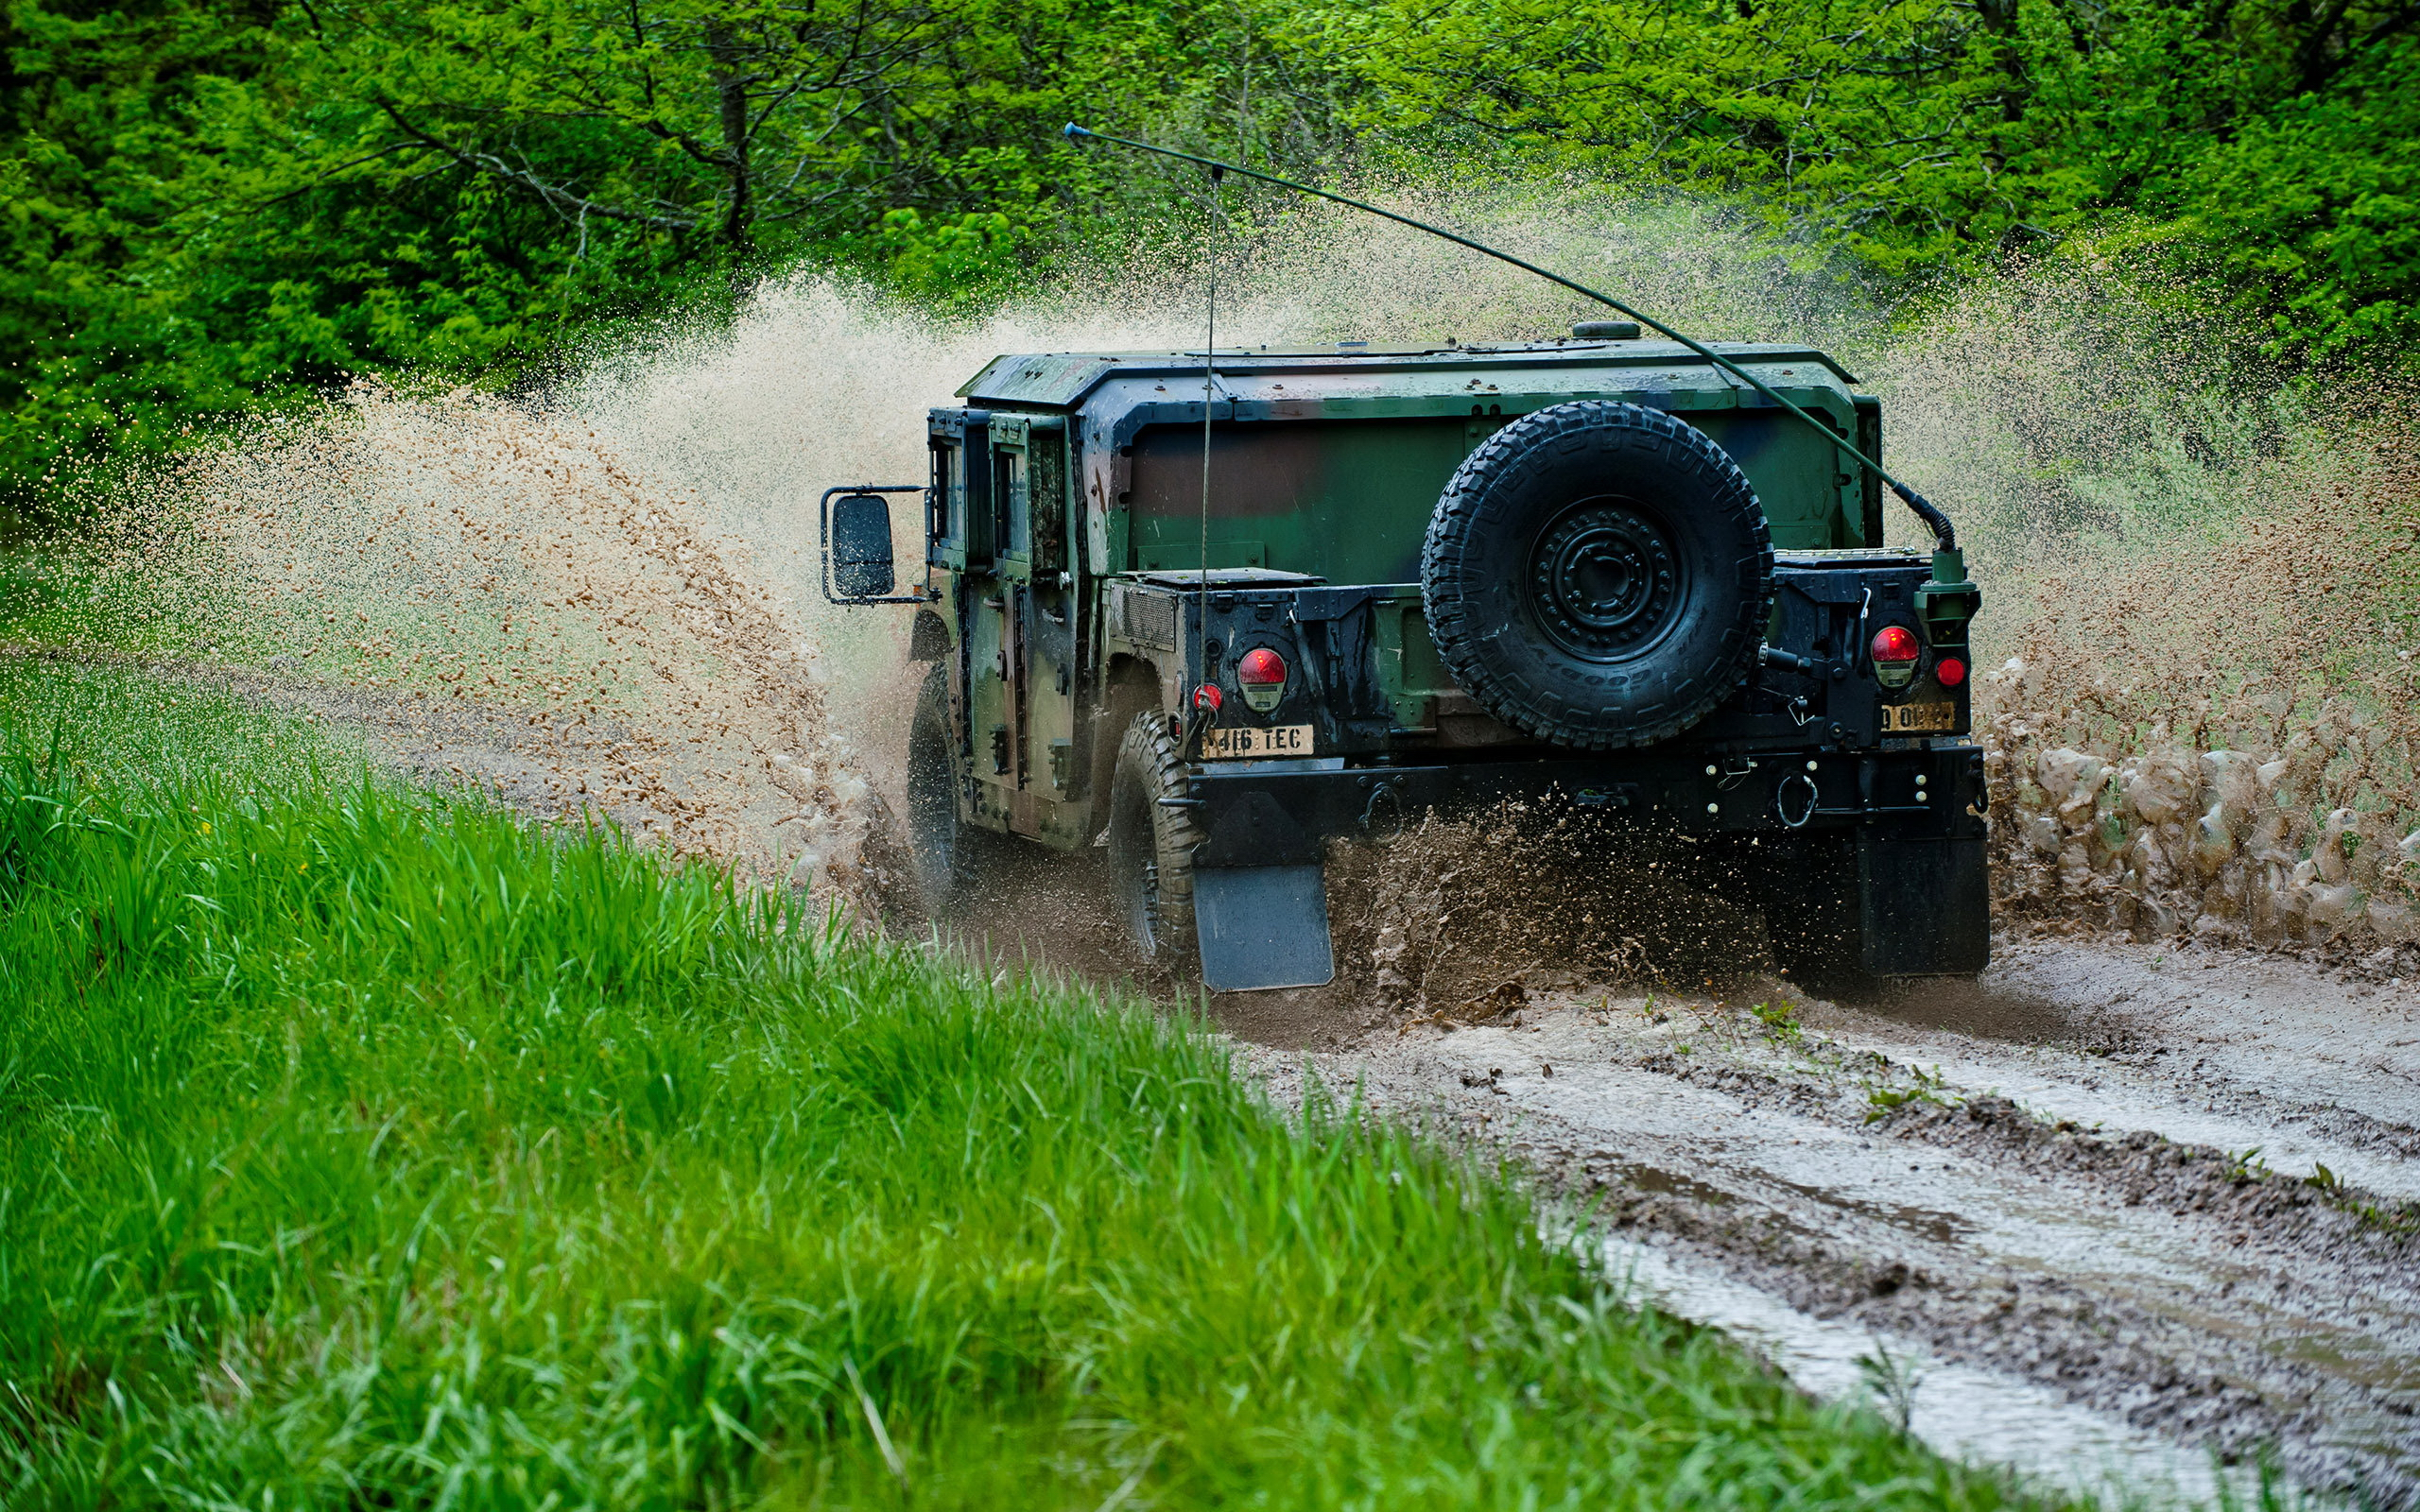 Military Hummer going off road